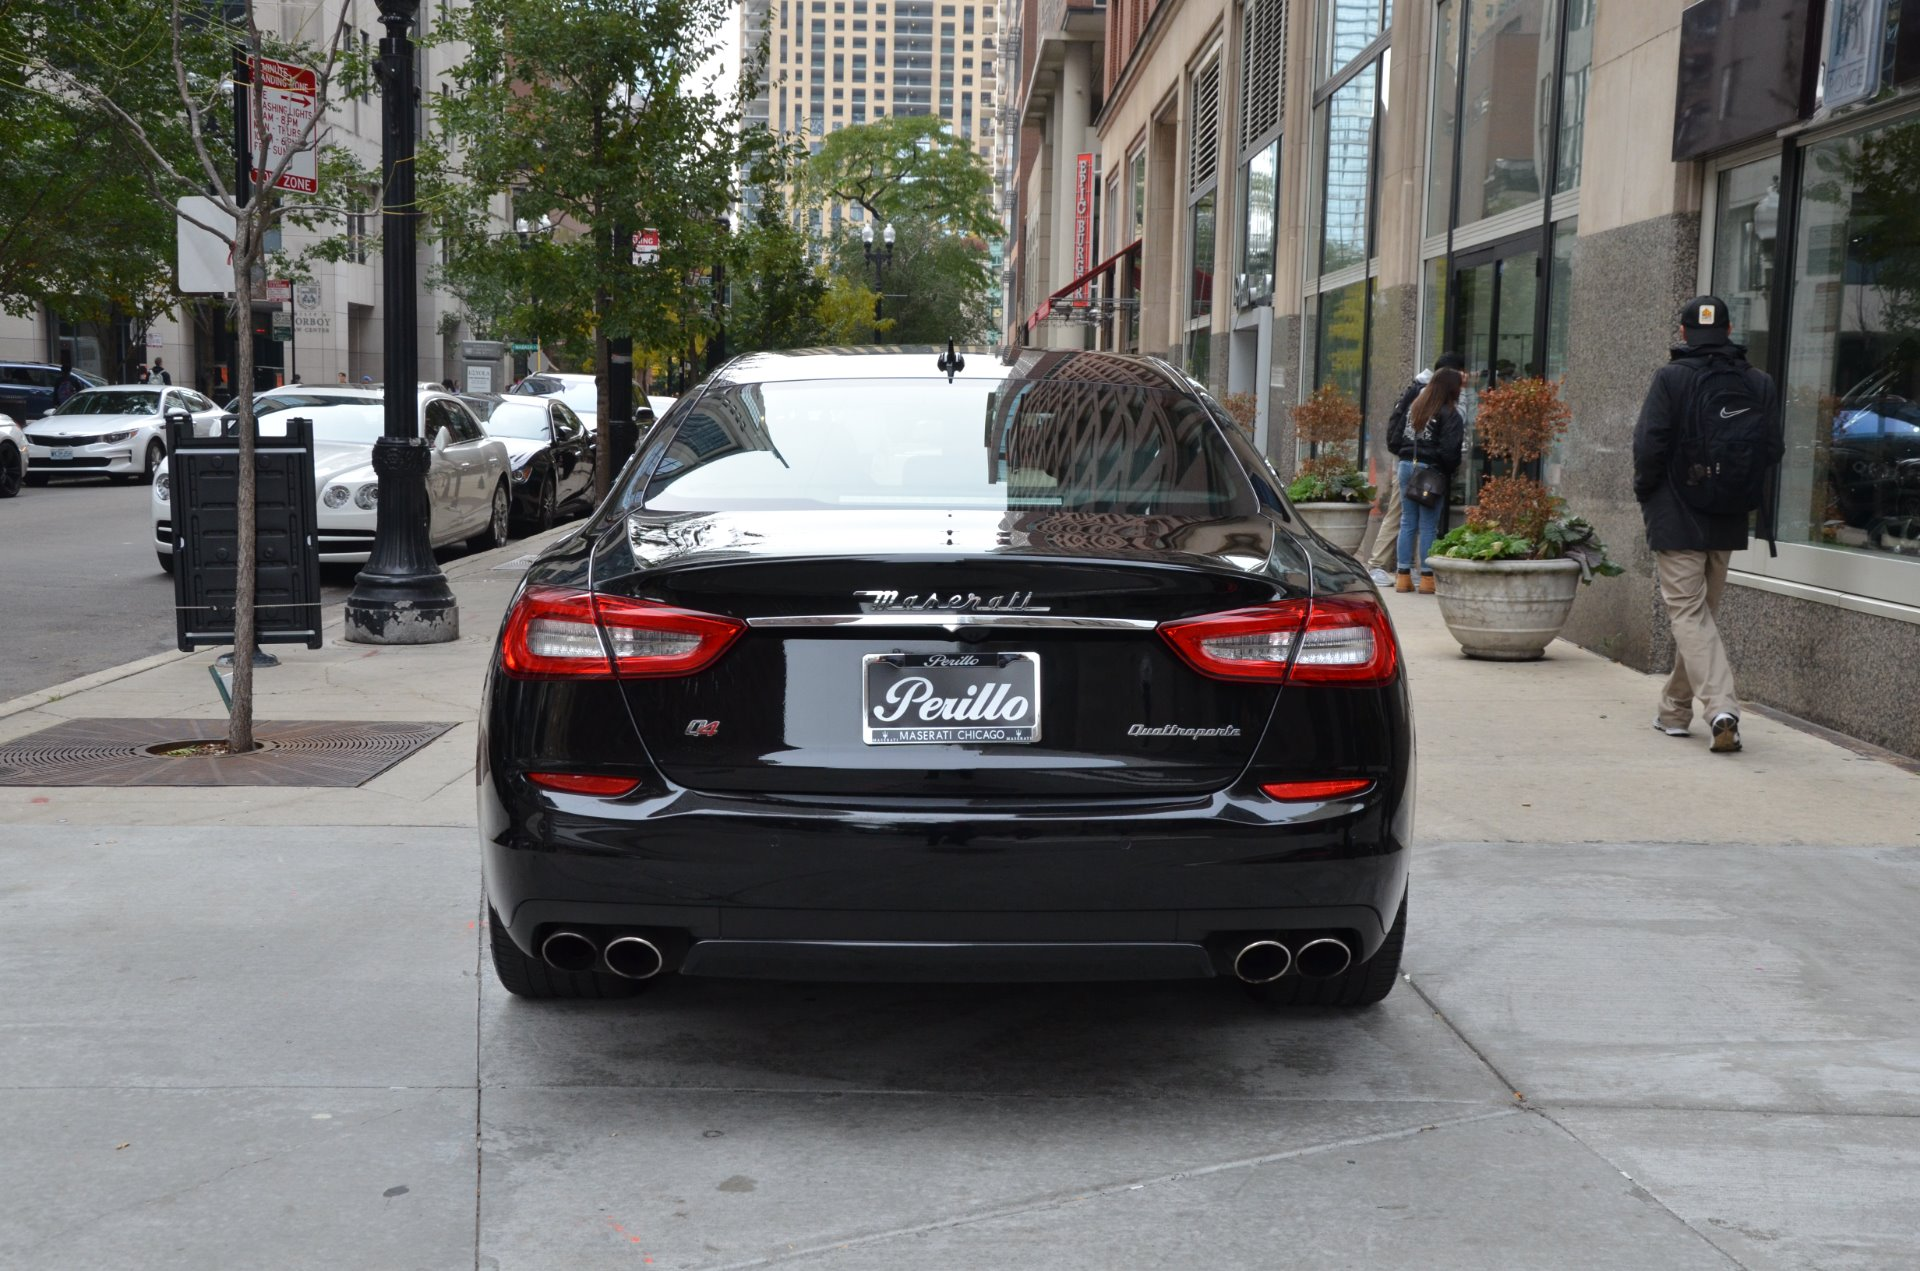 2014 maserati quattroporte sq4 s q4 stock b822a for sale near chicago il il maserati dealer. Black Bedroom Furniture Sets. Home Design Ideas